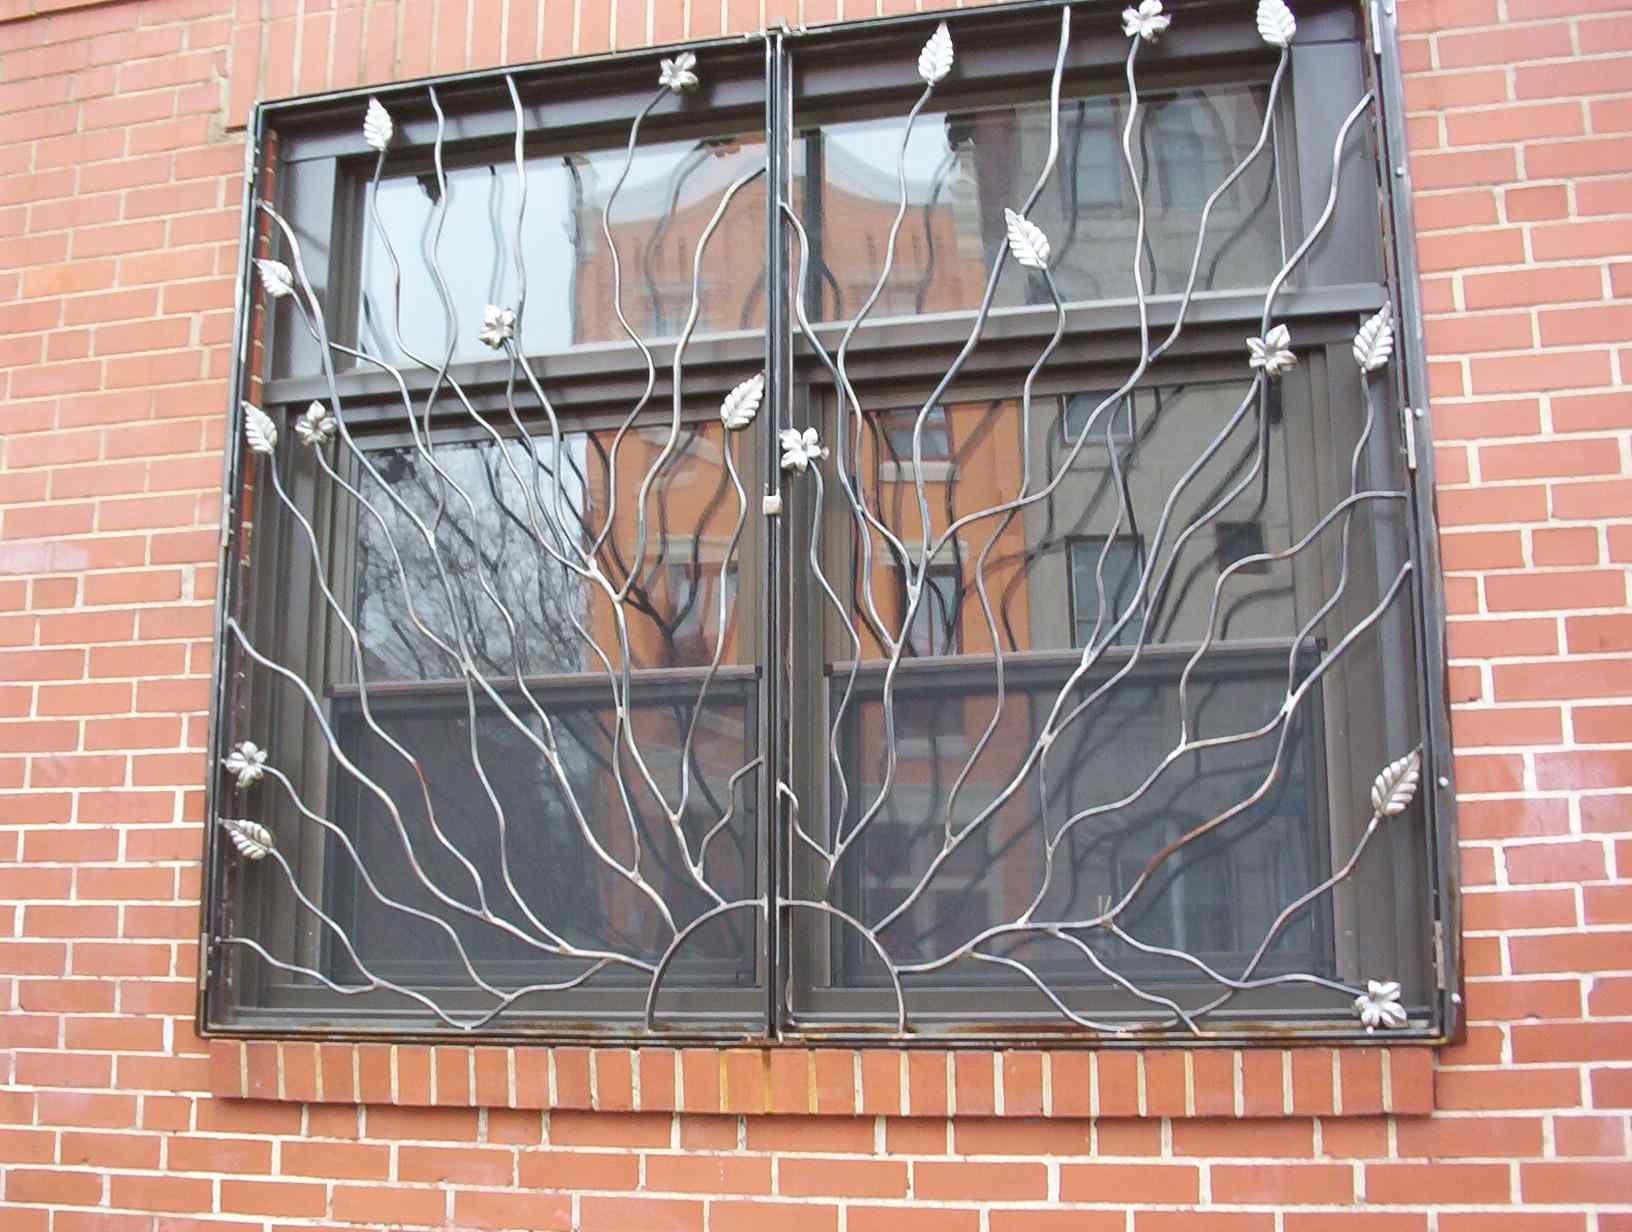 Drews iron fencing services metal work for class for Window protector designs